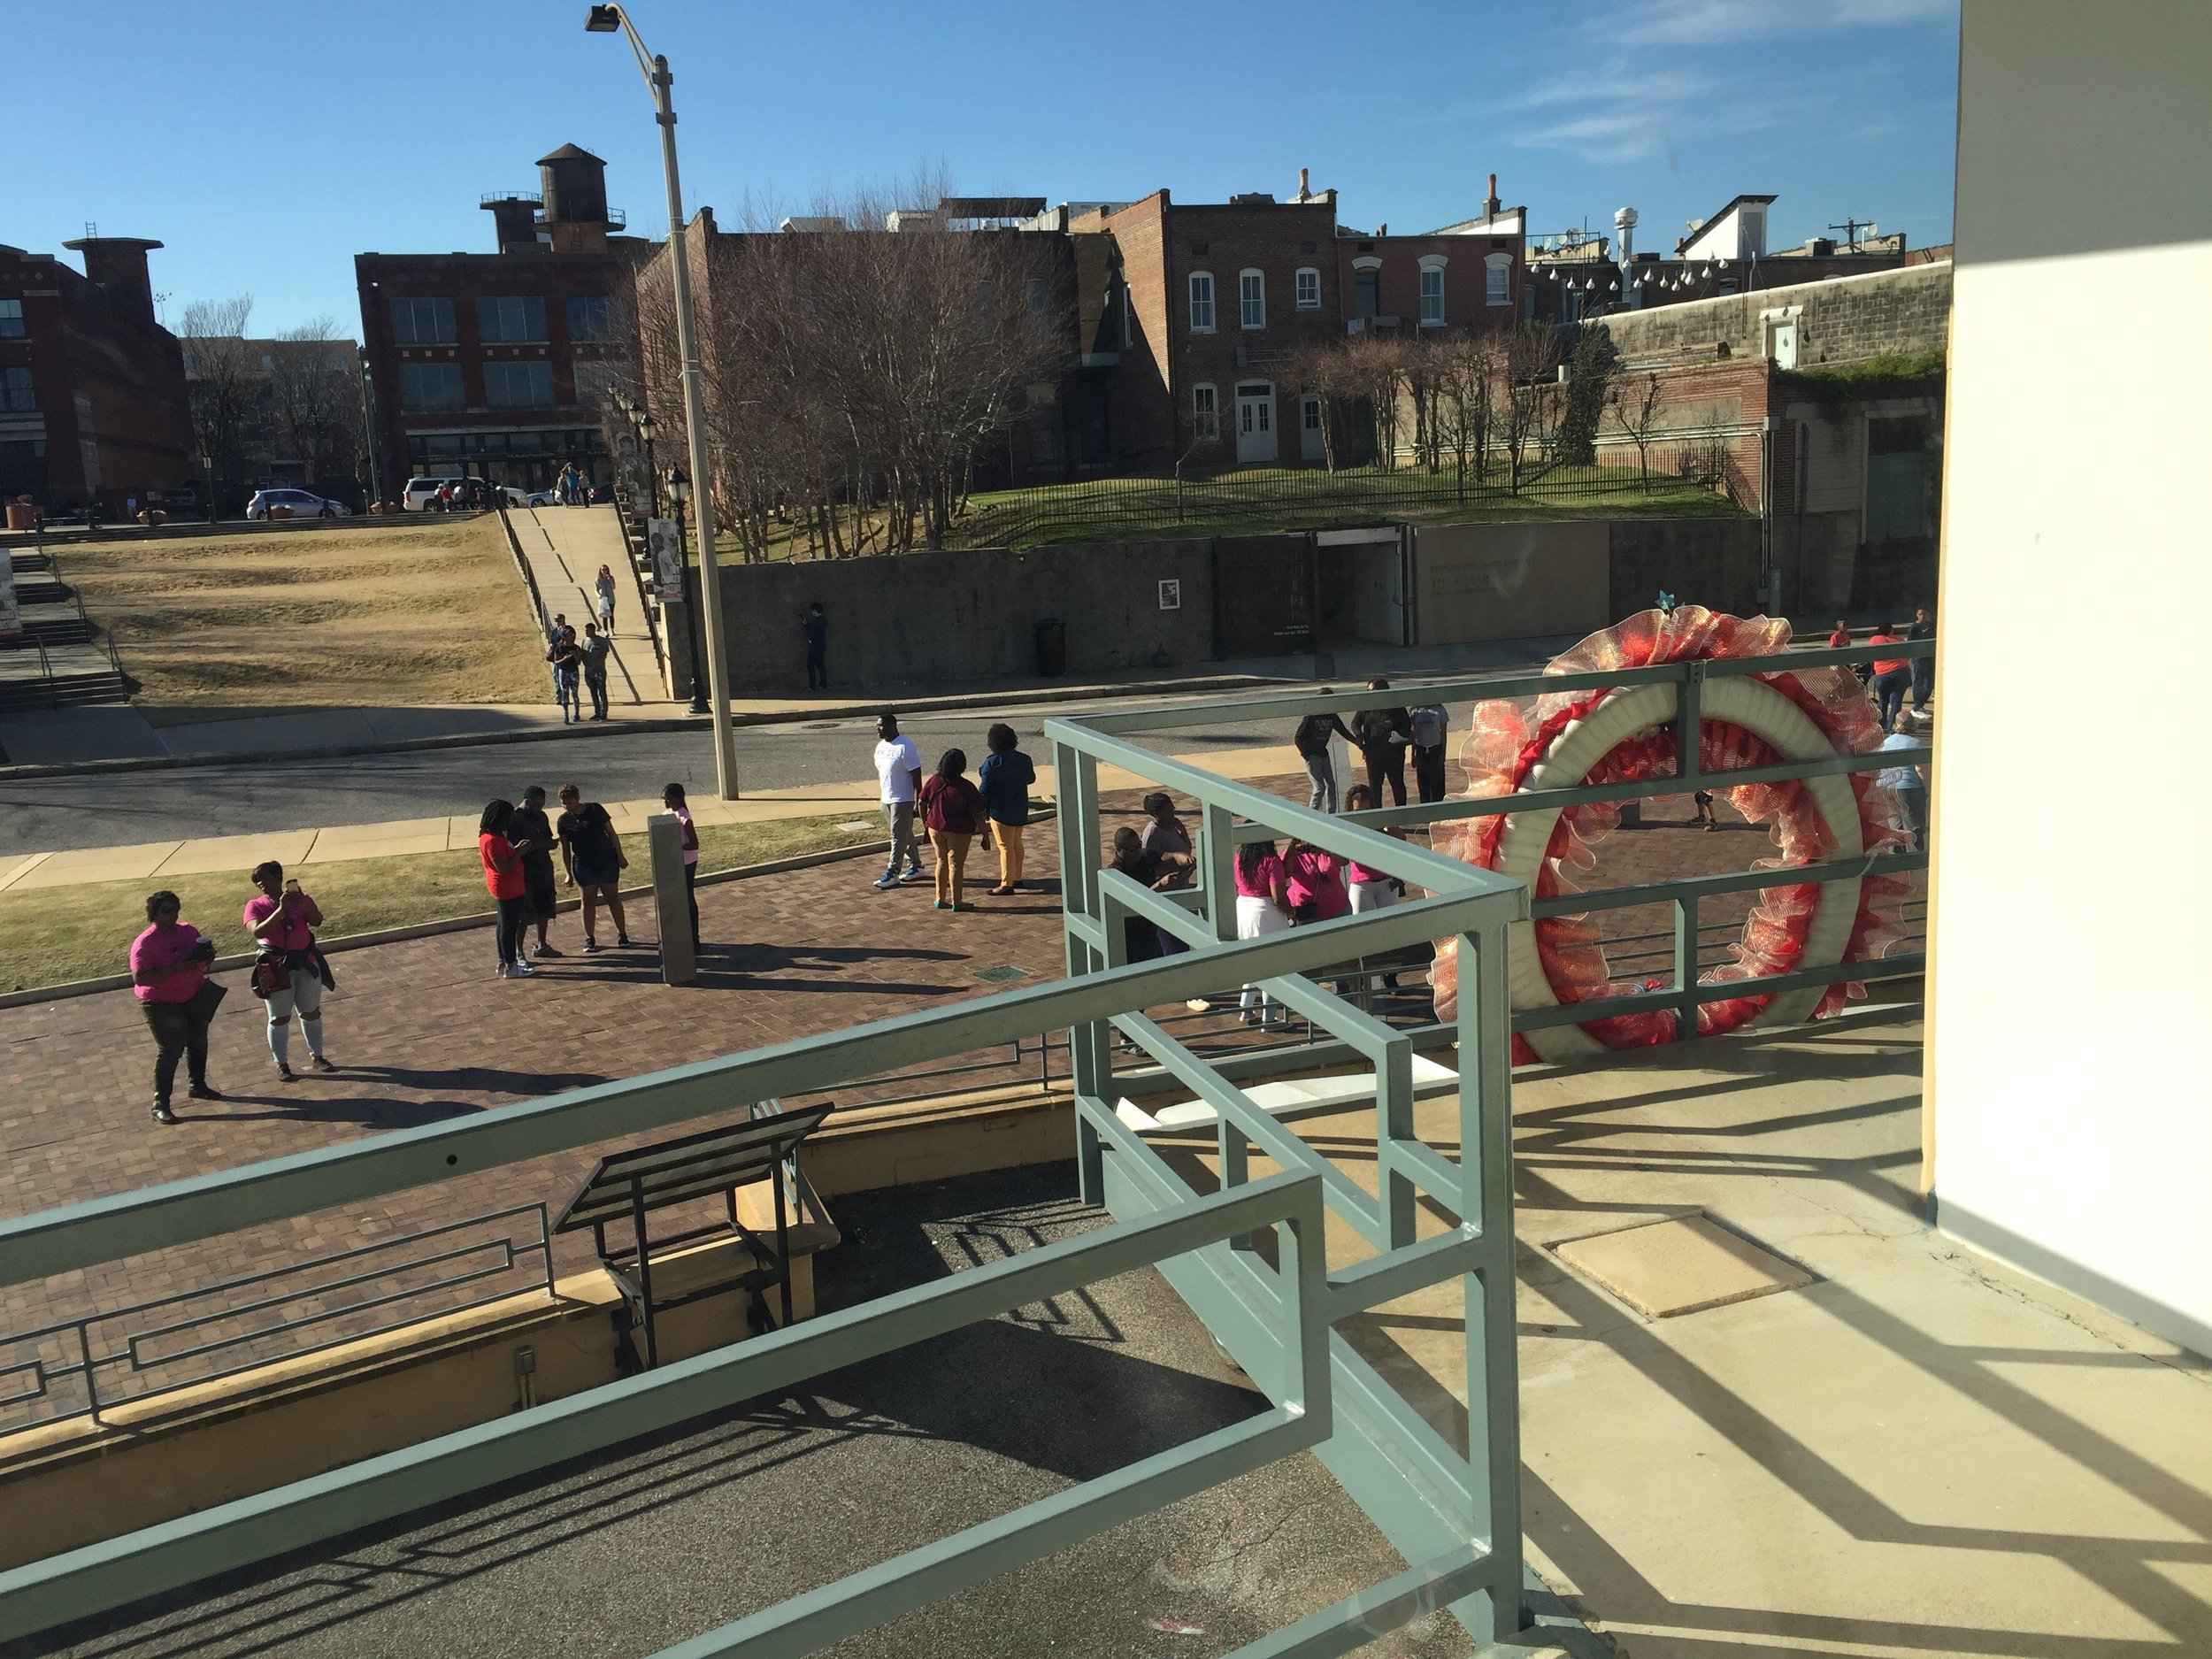 The view from the Lorraine Motel in Memphis, now part of the National Civil Rights Museum, shows the balcony where King was standing when he was assassinated in 1968. Photo by Rick Holmes